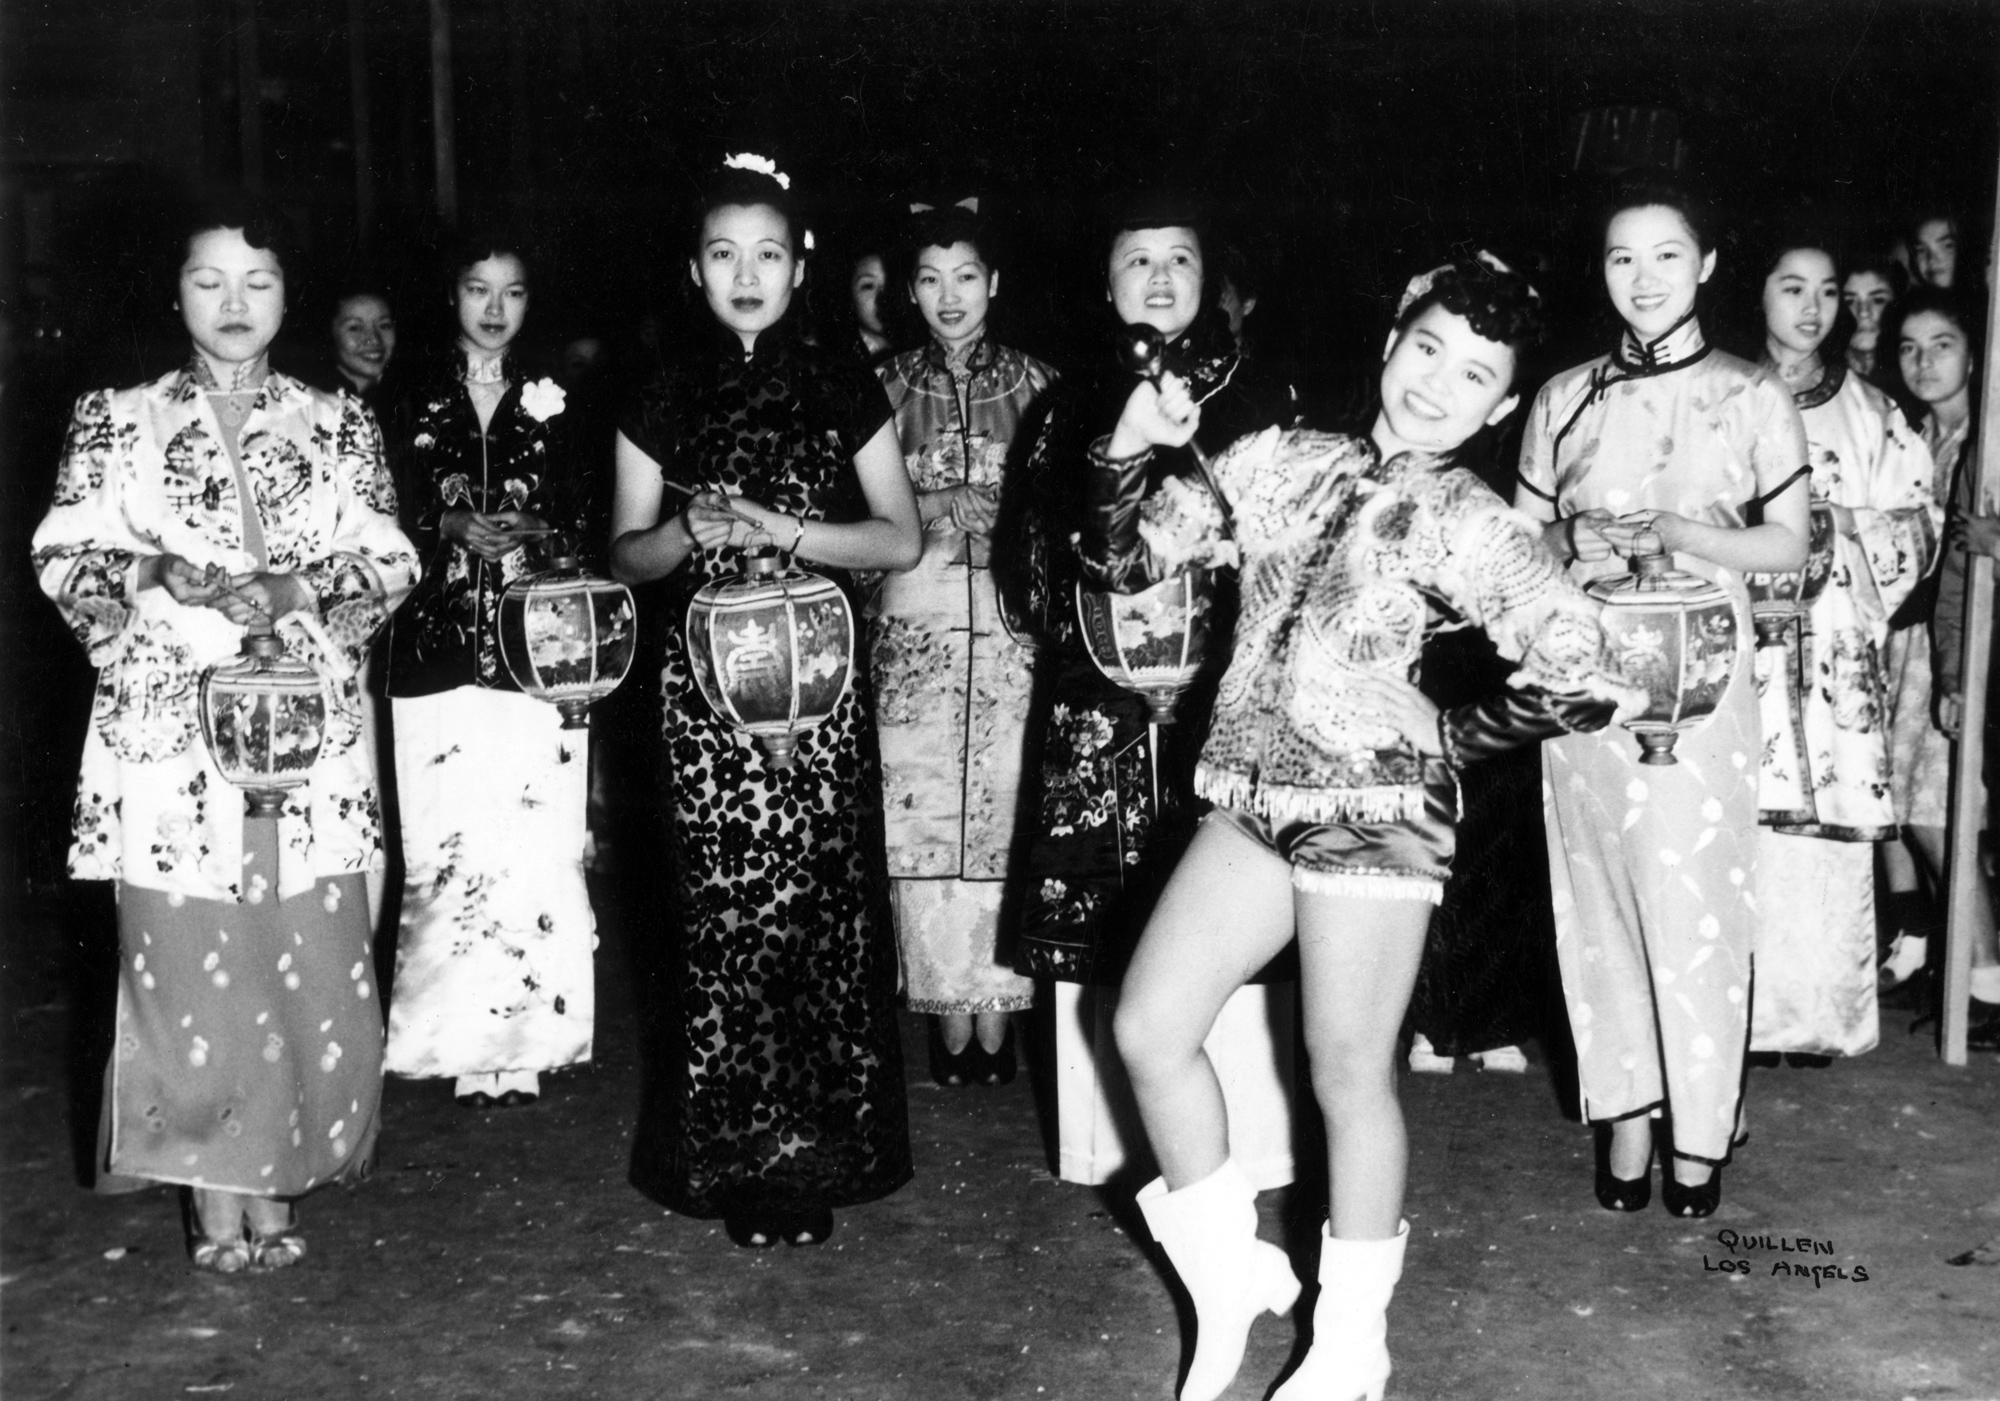 Barbara Jean Wong Lee leads the Mei Wah Drum Corps Lantern Parade for New Chinatown's 2nd Anniversary celebration (1940)